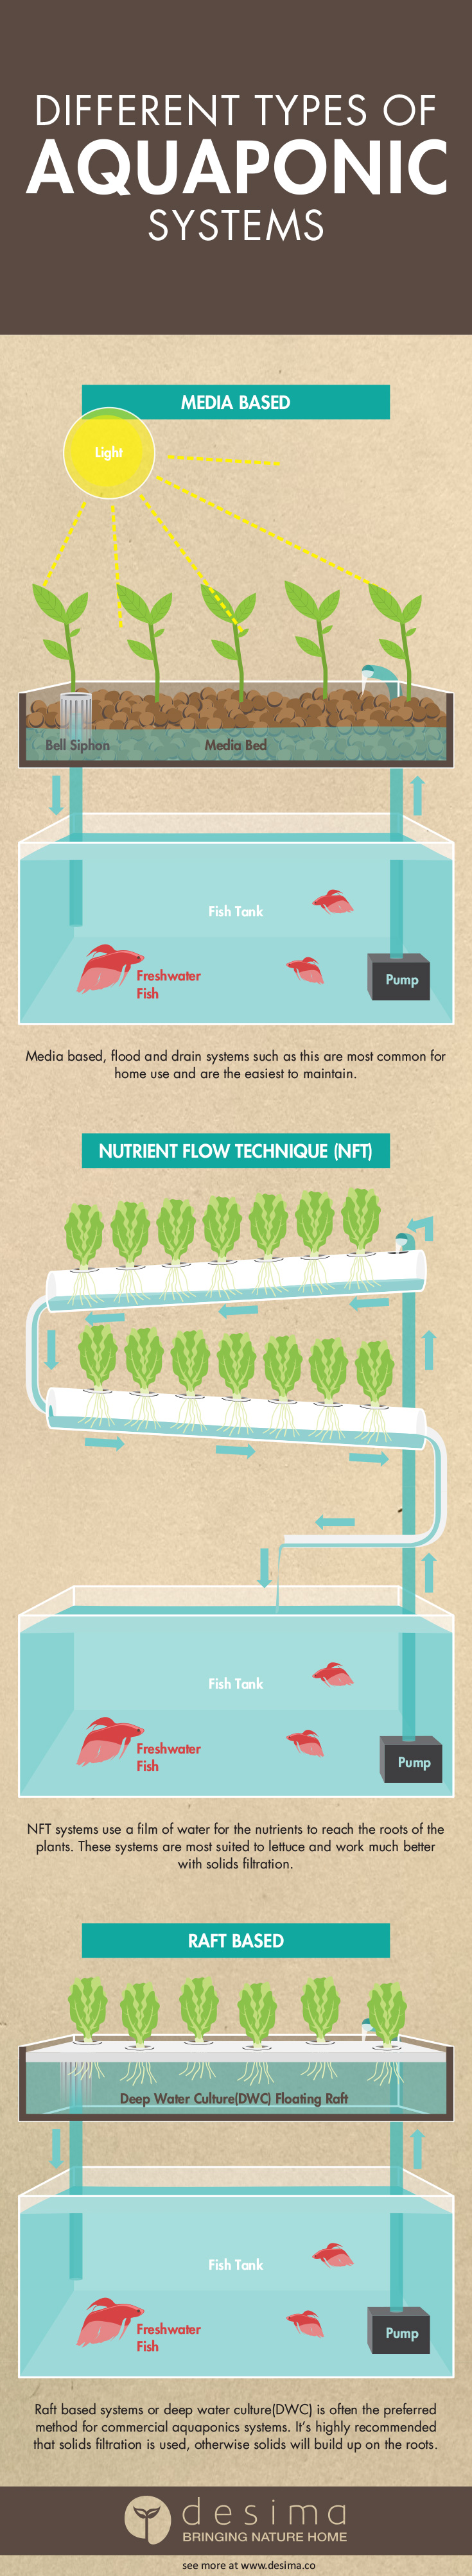 Infographic on the different types of aquaponics systems.